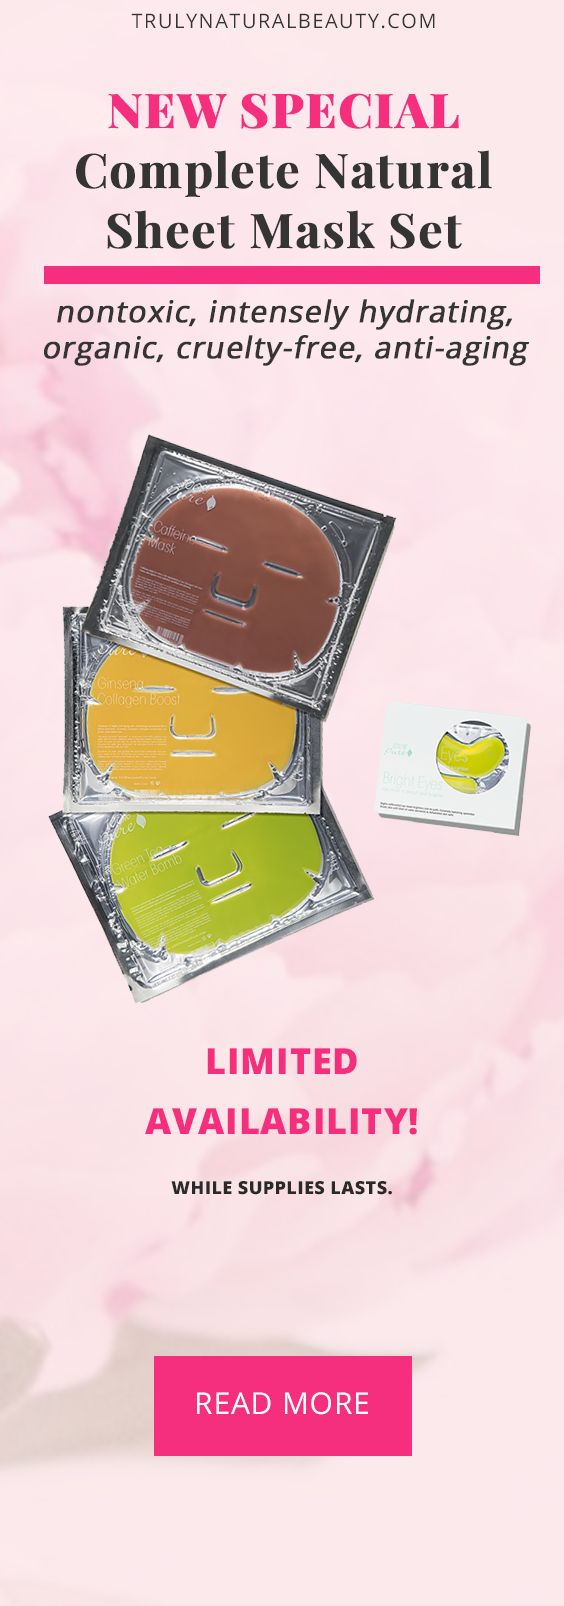 NEW SPECIAL! from 100% Pure complete sheet mask set. All natural, nontoxic, cruelty-free, no chemicals, organic beauty, morning and night skin care routine, natural anti-aging, natural beauty brands, natural beauty stores, natural ingredients for skin, natural ingredients in skincare, natural organic skincare, natural skin care products, Natural skincare ideas, nighttime skincare routine, nontoxic makeup, nontoxic makeup companies, nontoxic products, why natural products are better.